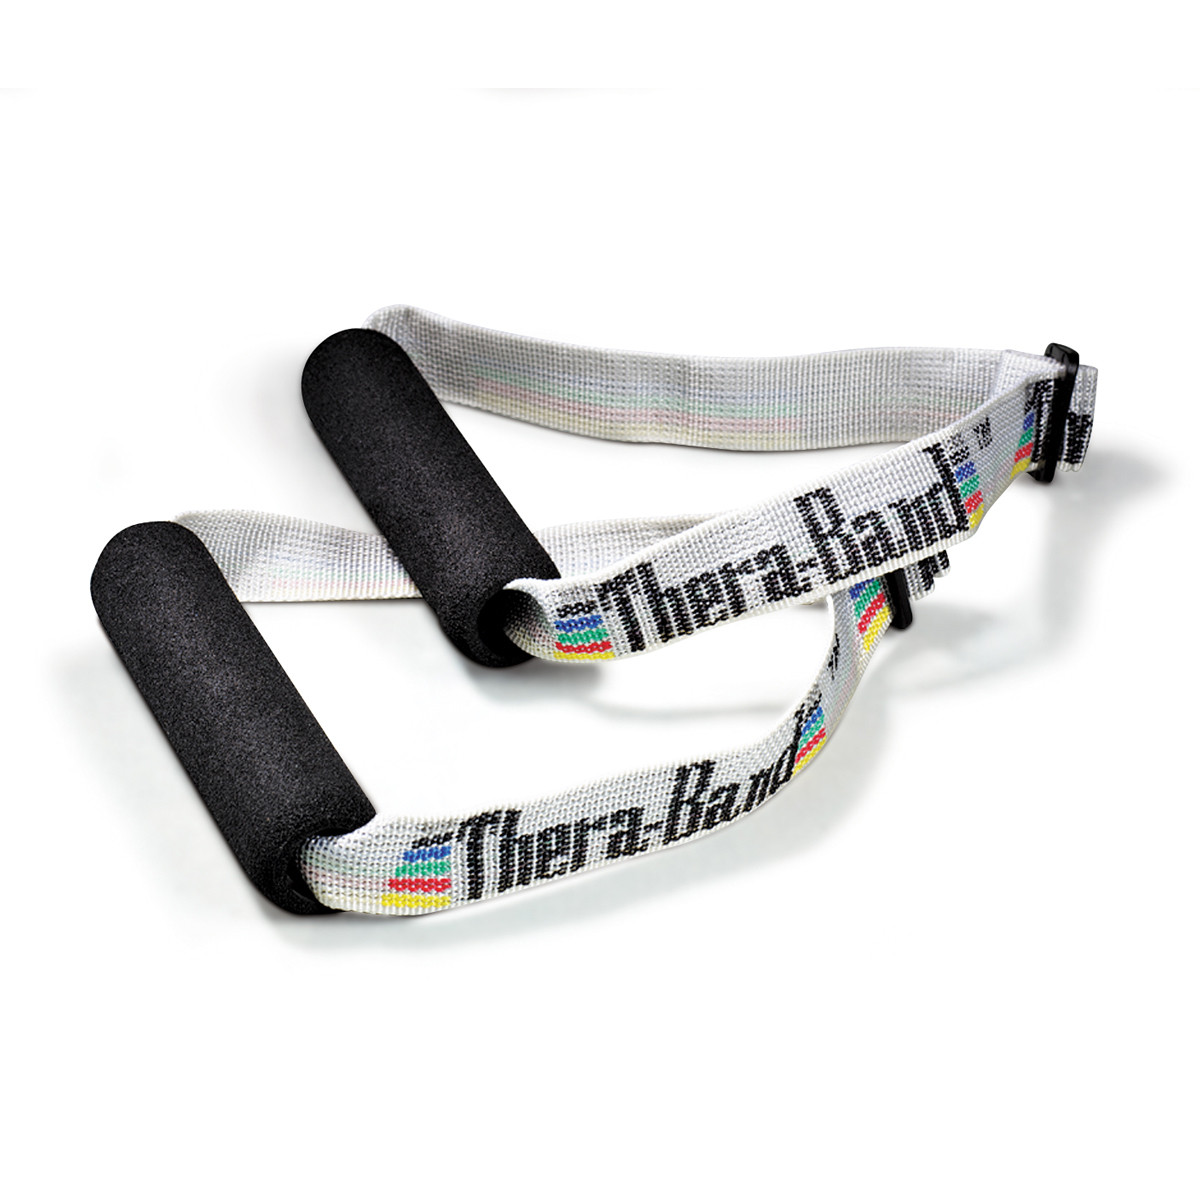 TheraBand Exercise Handles - (1 Pair)